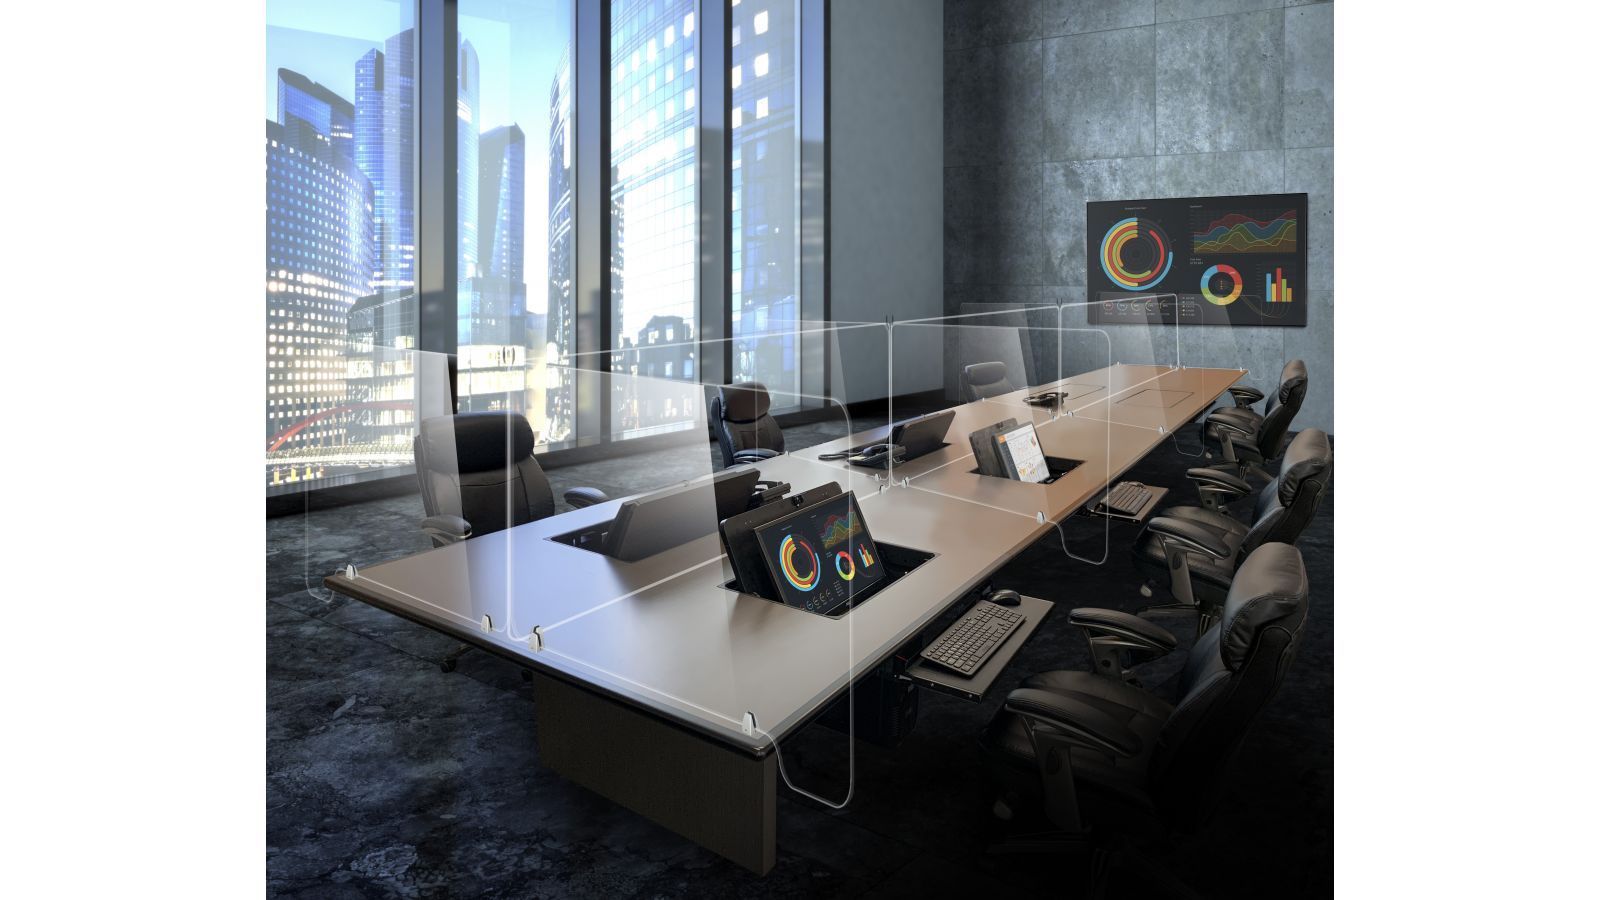 SAFEDESKS Customized Solutions for the New Workplace